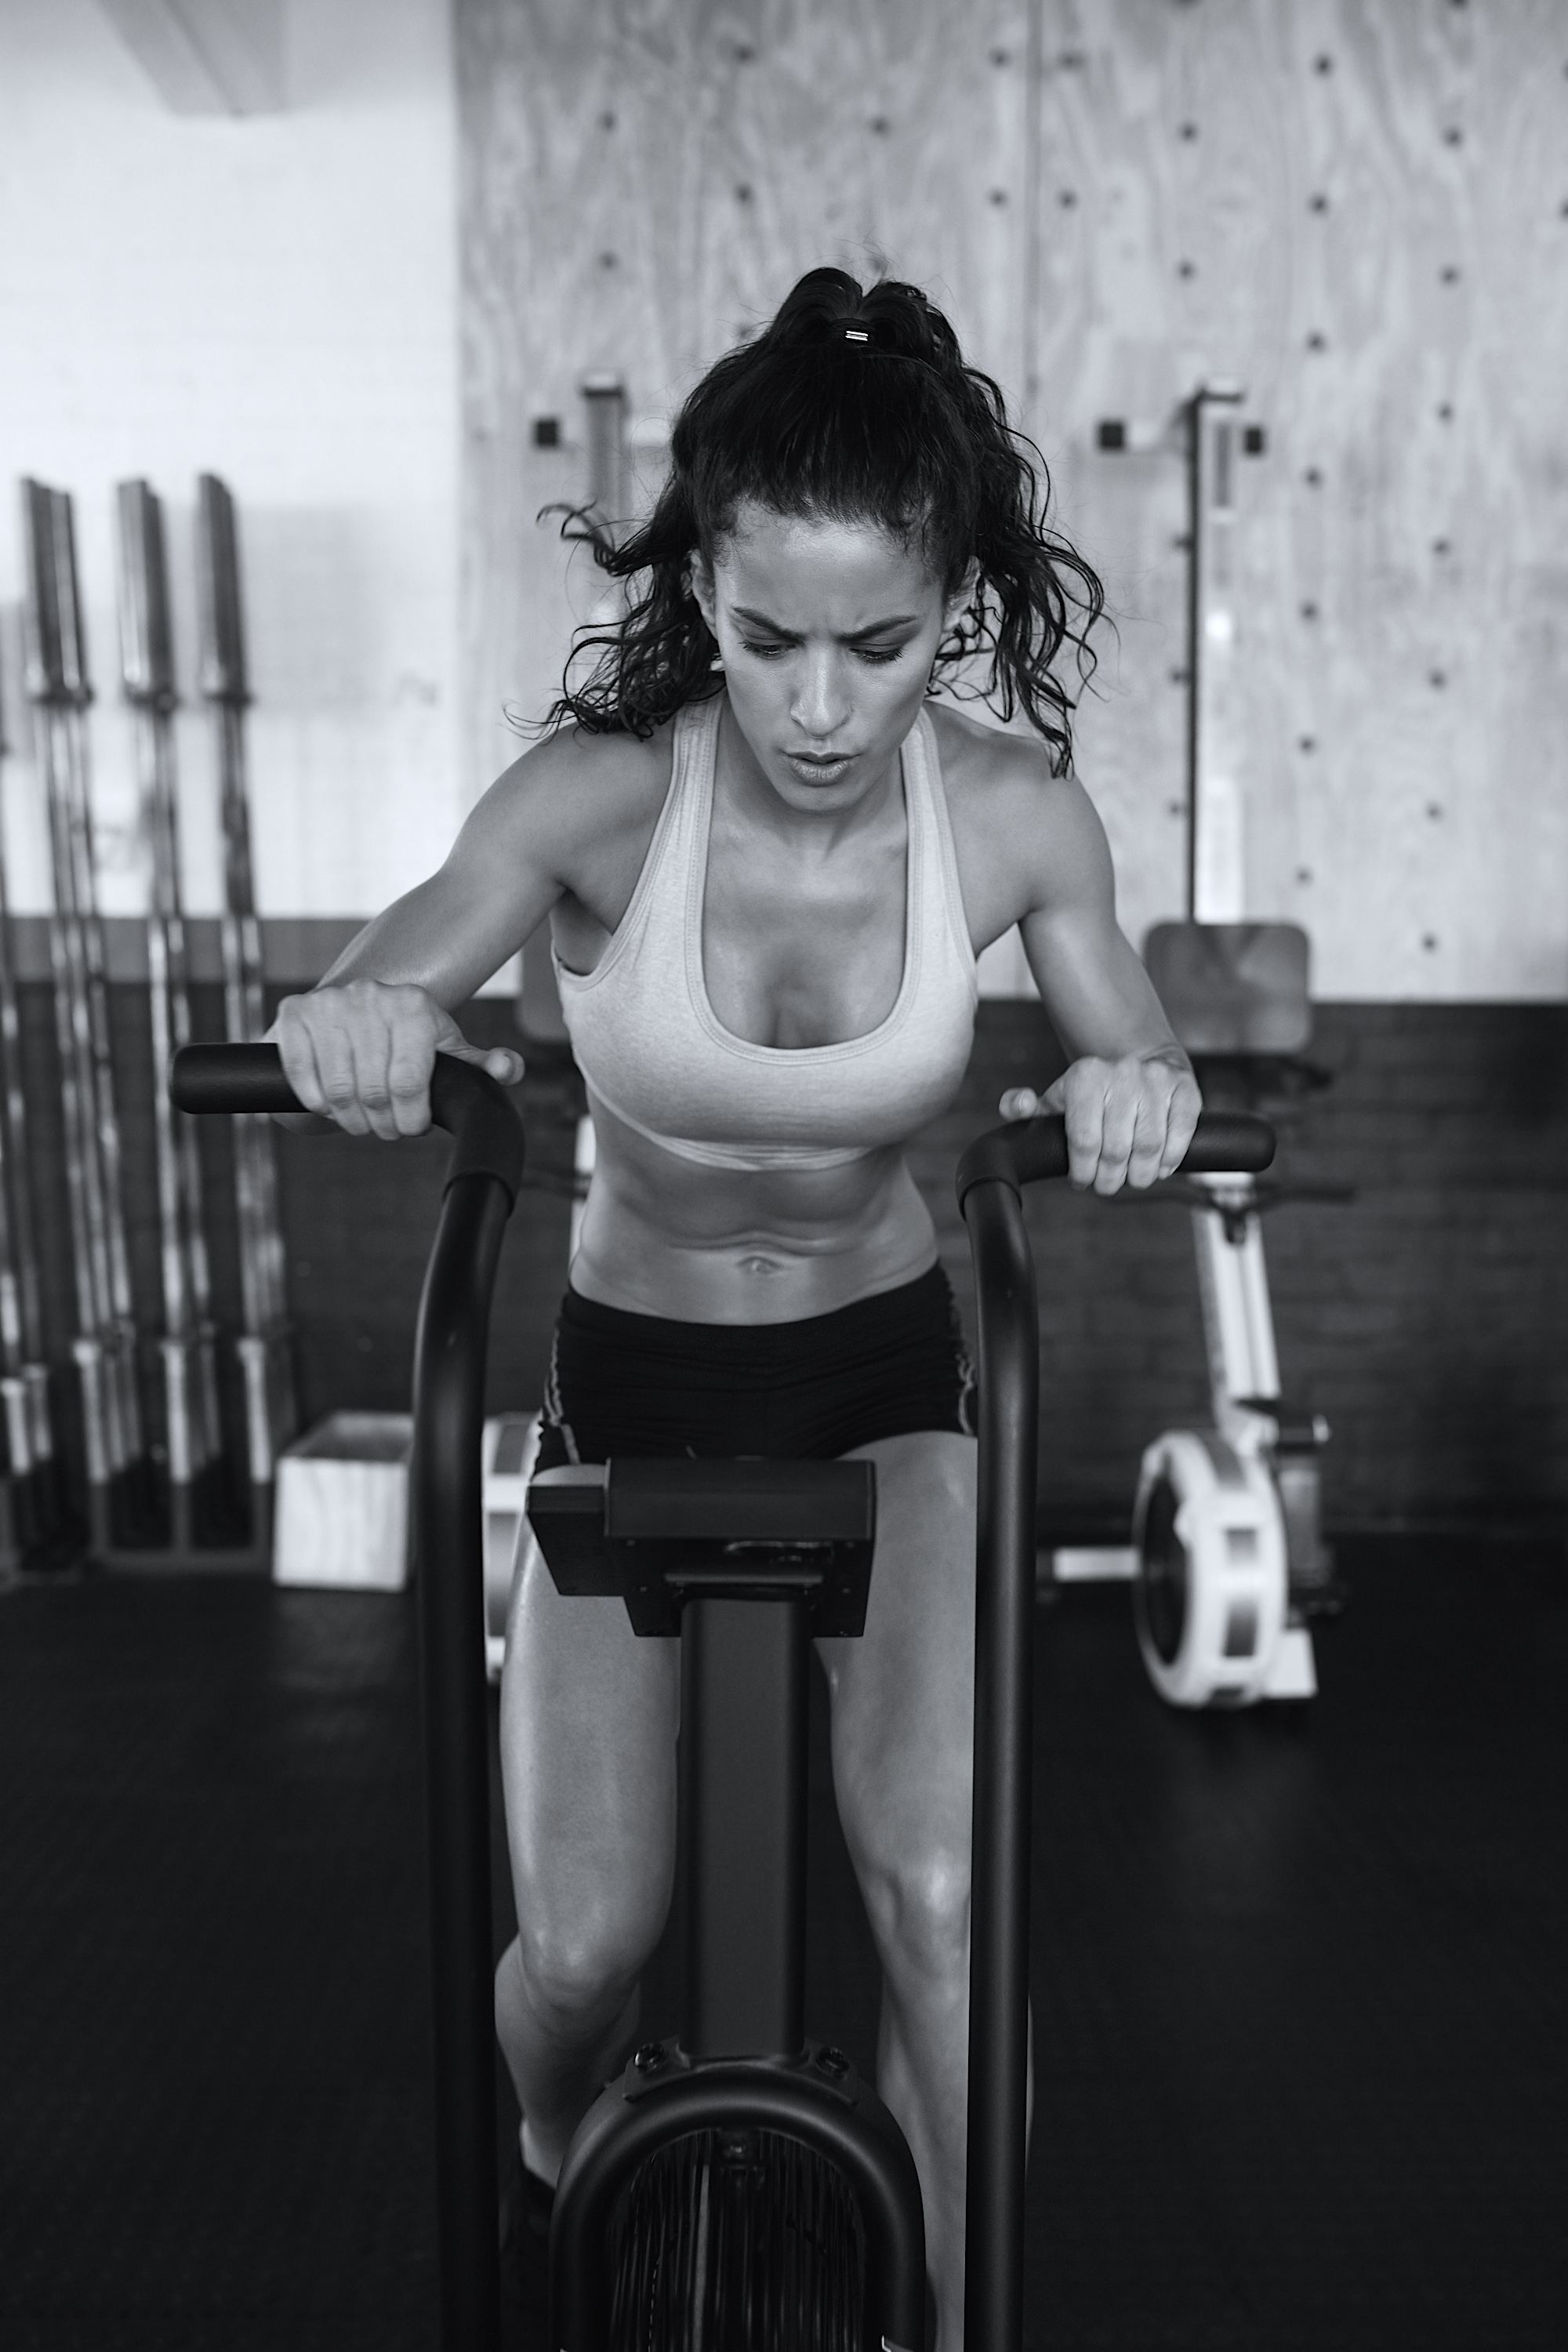 Fitness woman on bicycle doing cardio workout at gym. Fit young female exercising on gym bike.